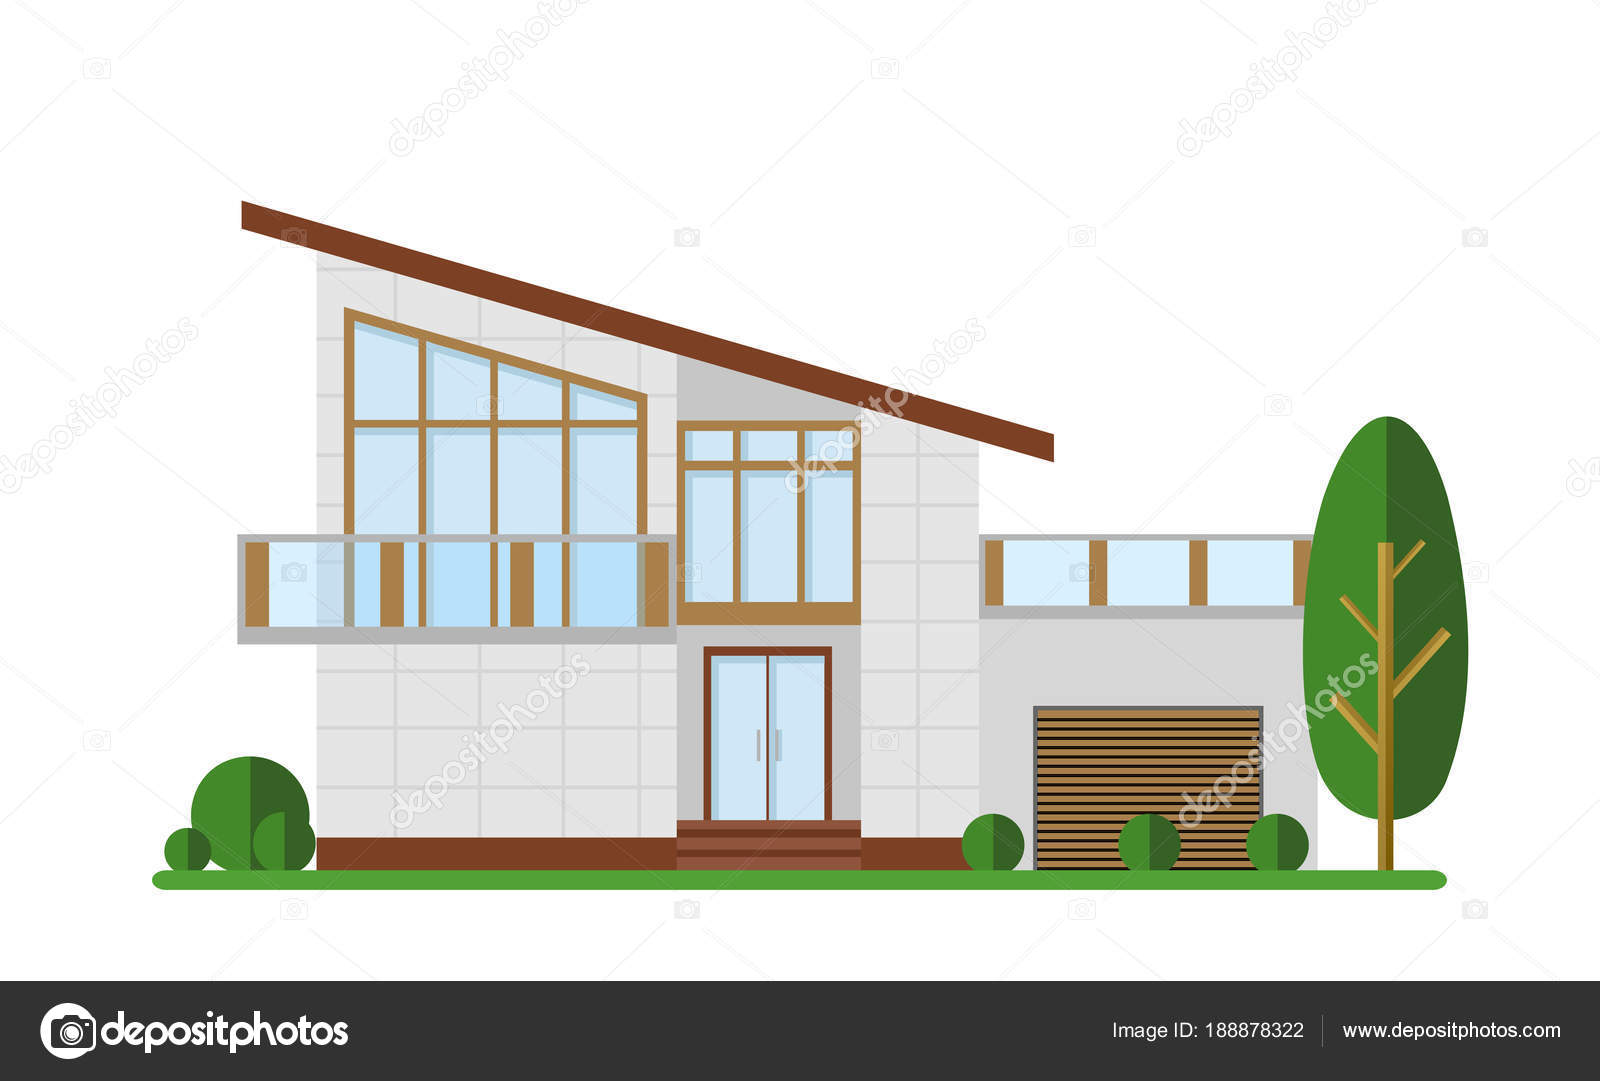 Illustration vectorielle de la maison familiale appartement moderne cottage construction chalet concept design plat illustration de stock